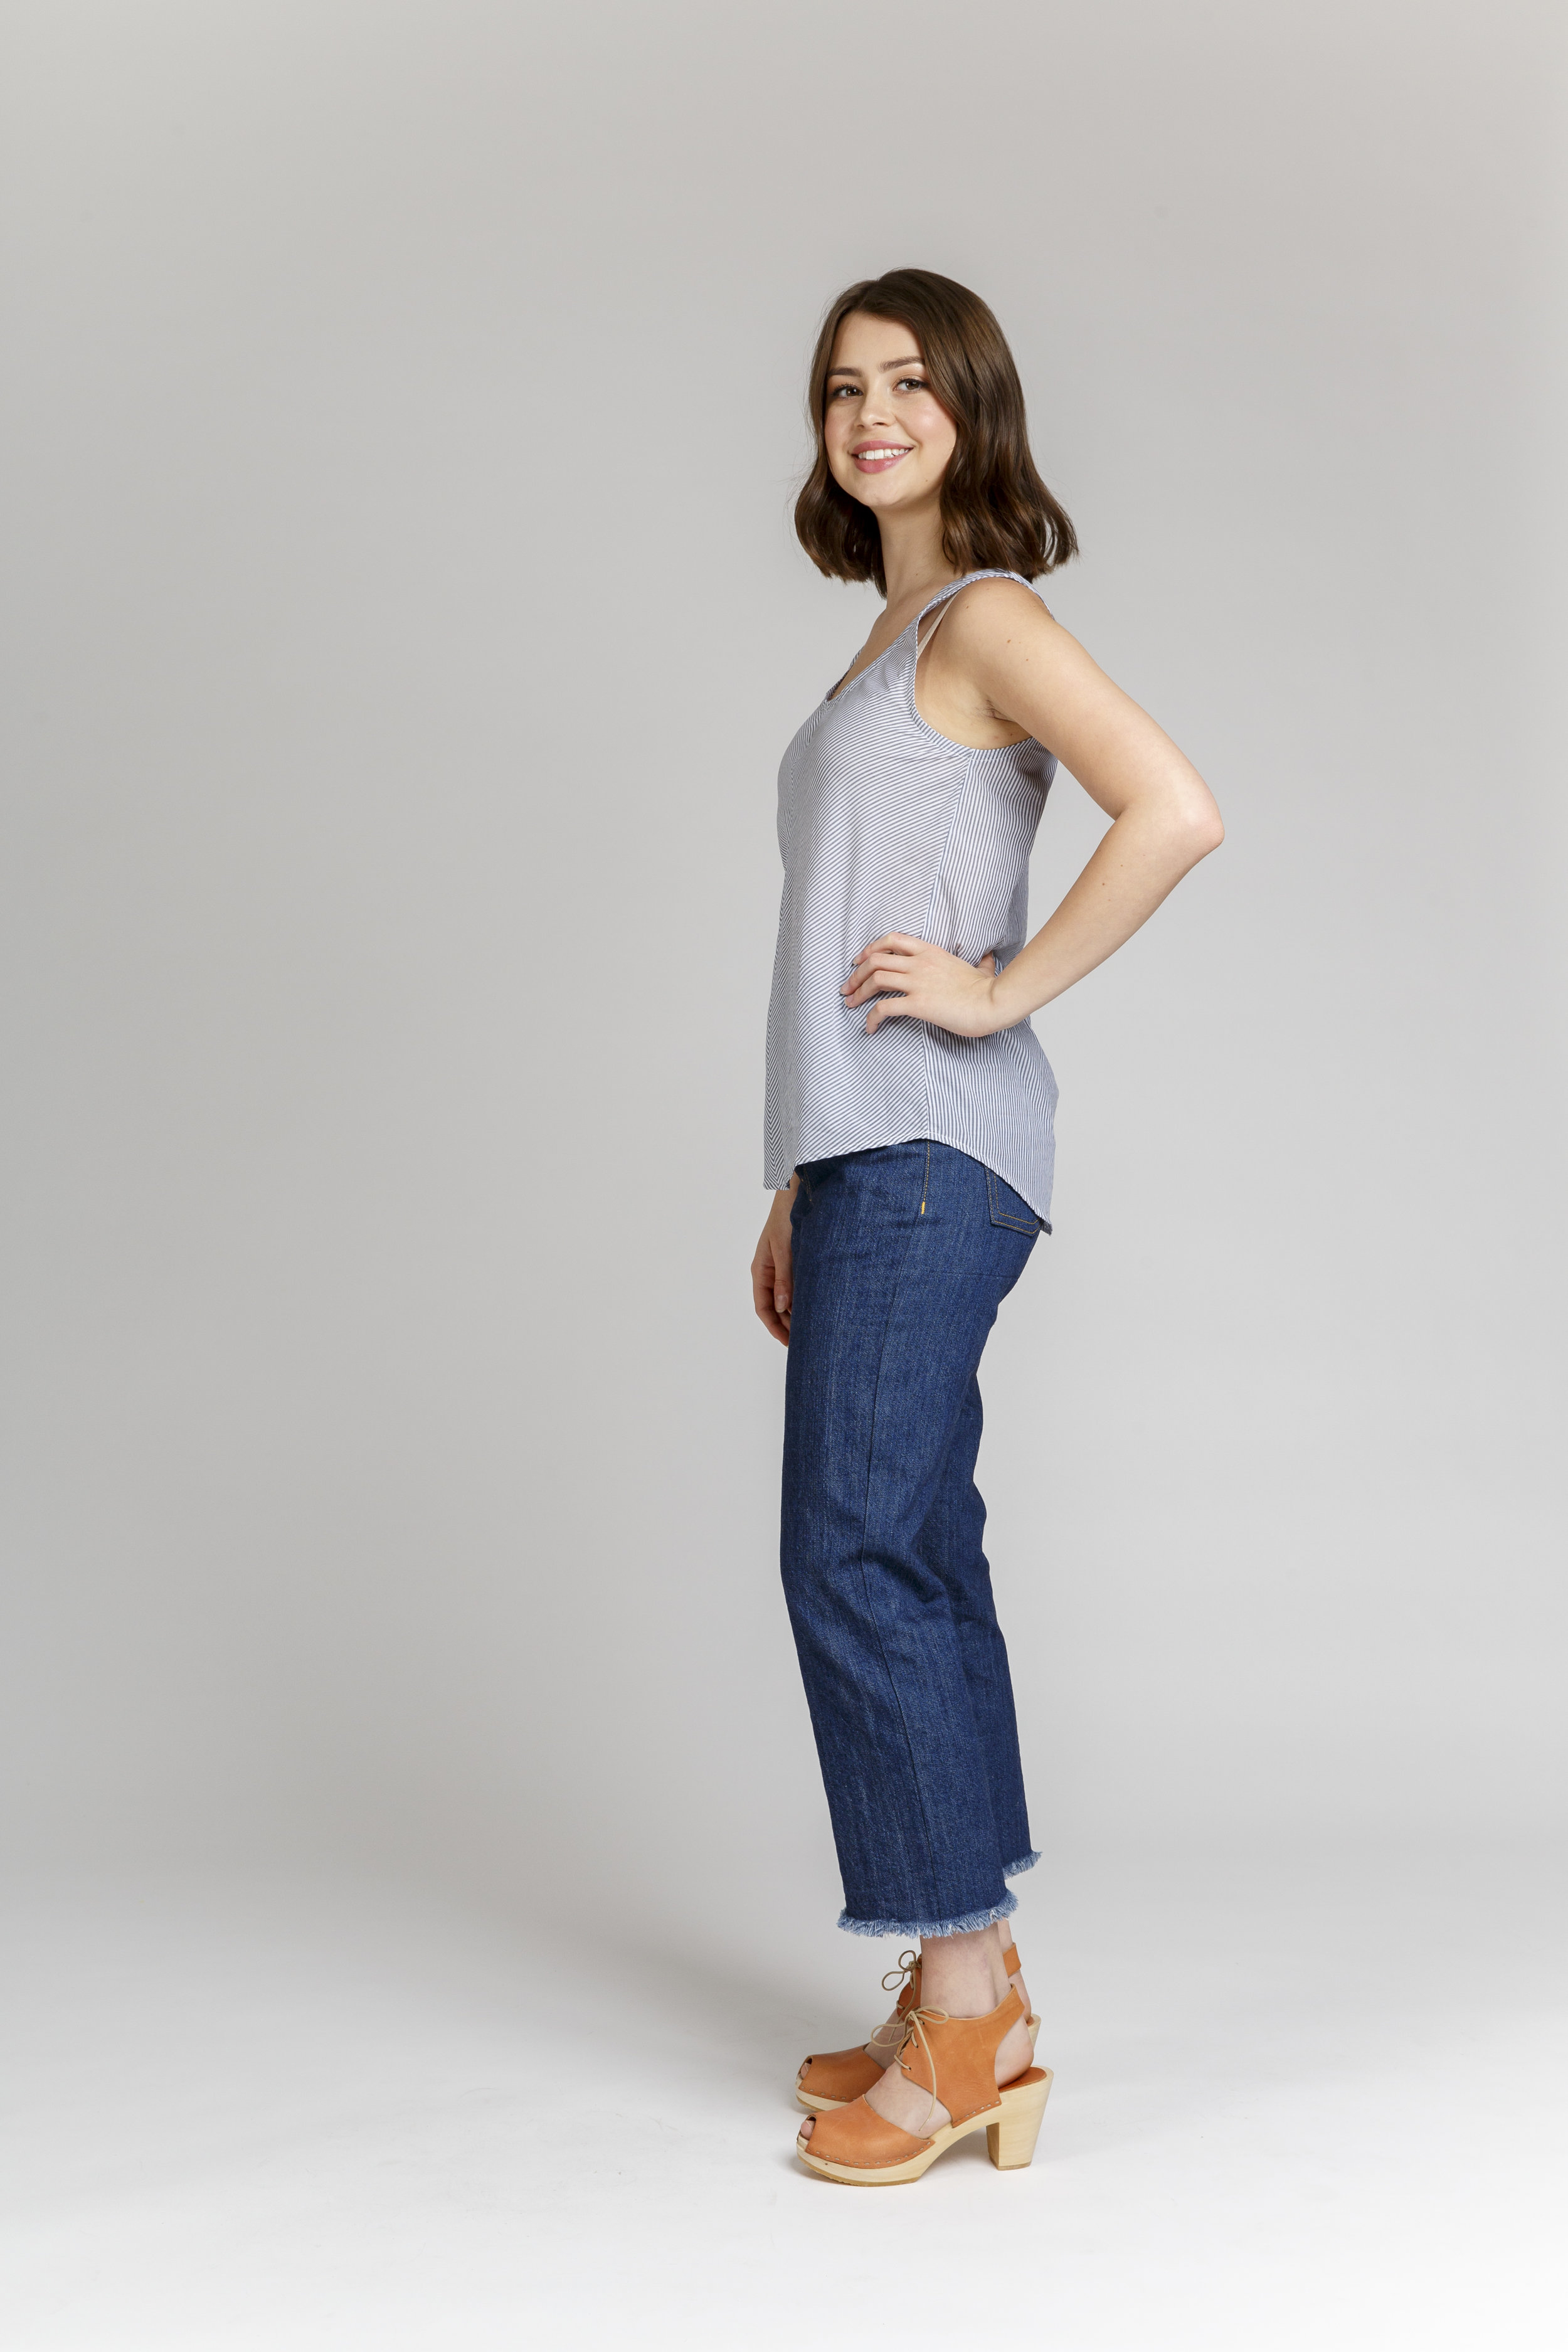 The Eucalypt top sewing pattern from Megan Neilsen